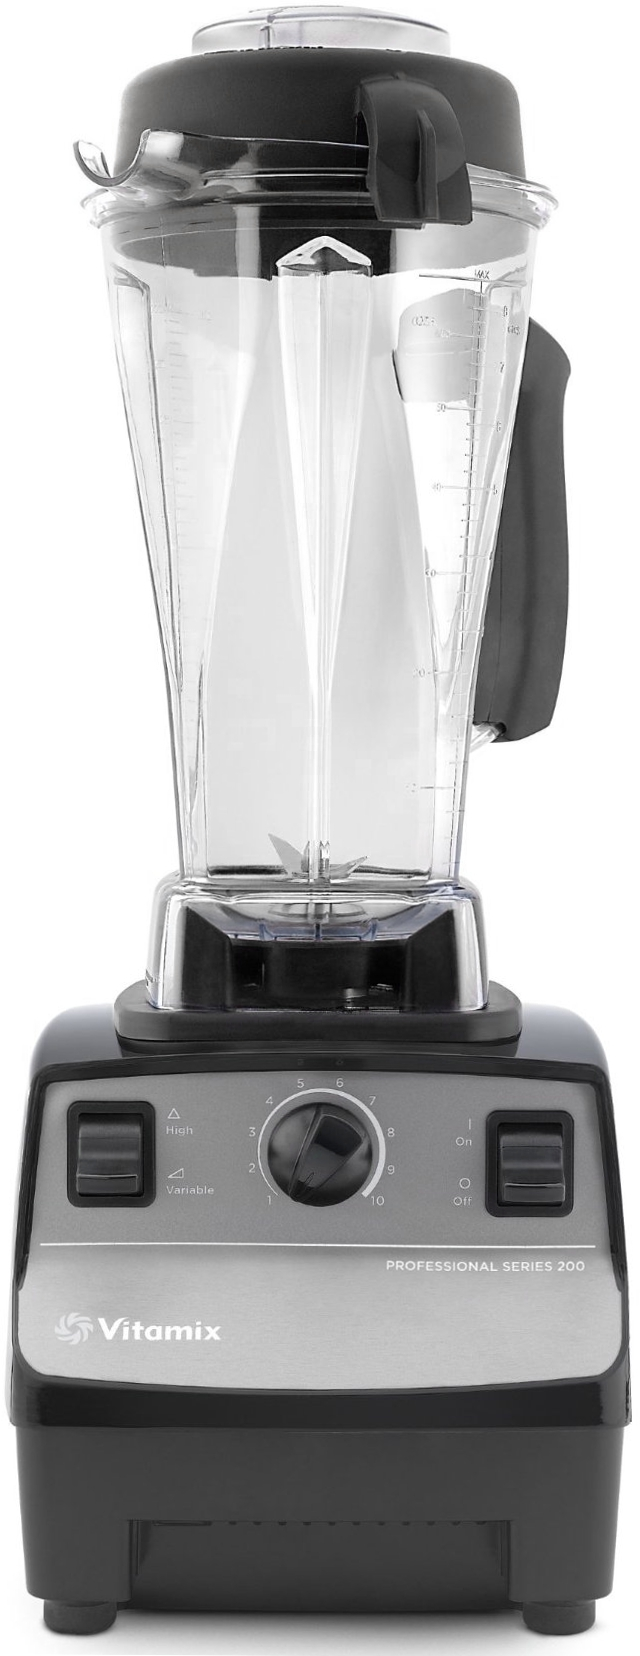 Vitamix Professional Series 200 Blender in Onyx